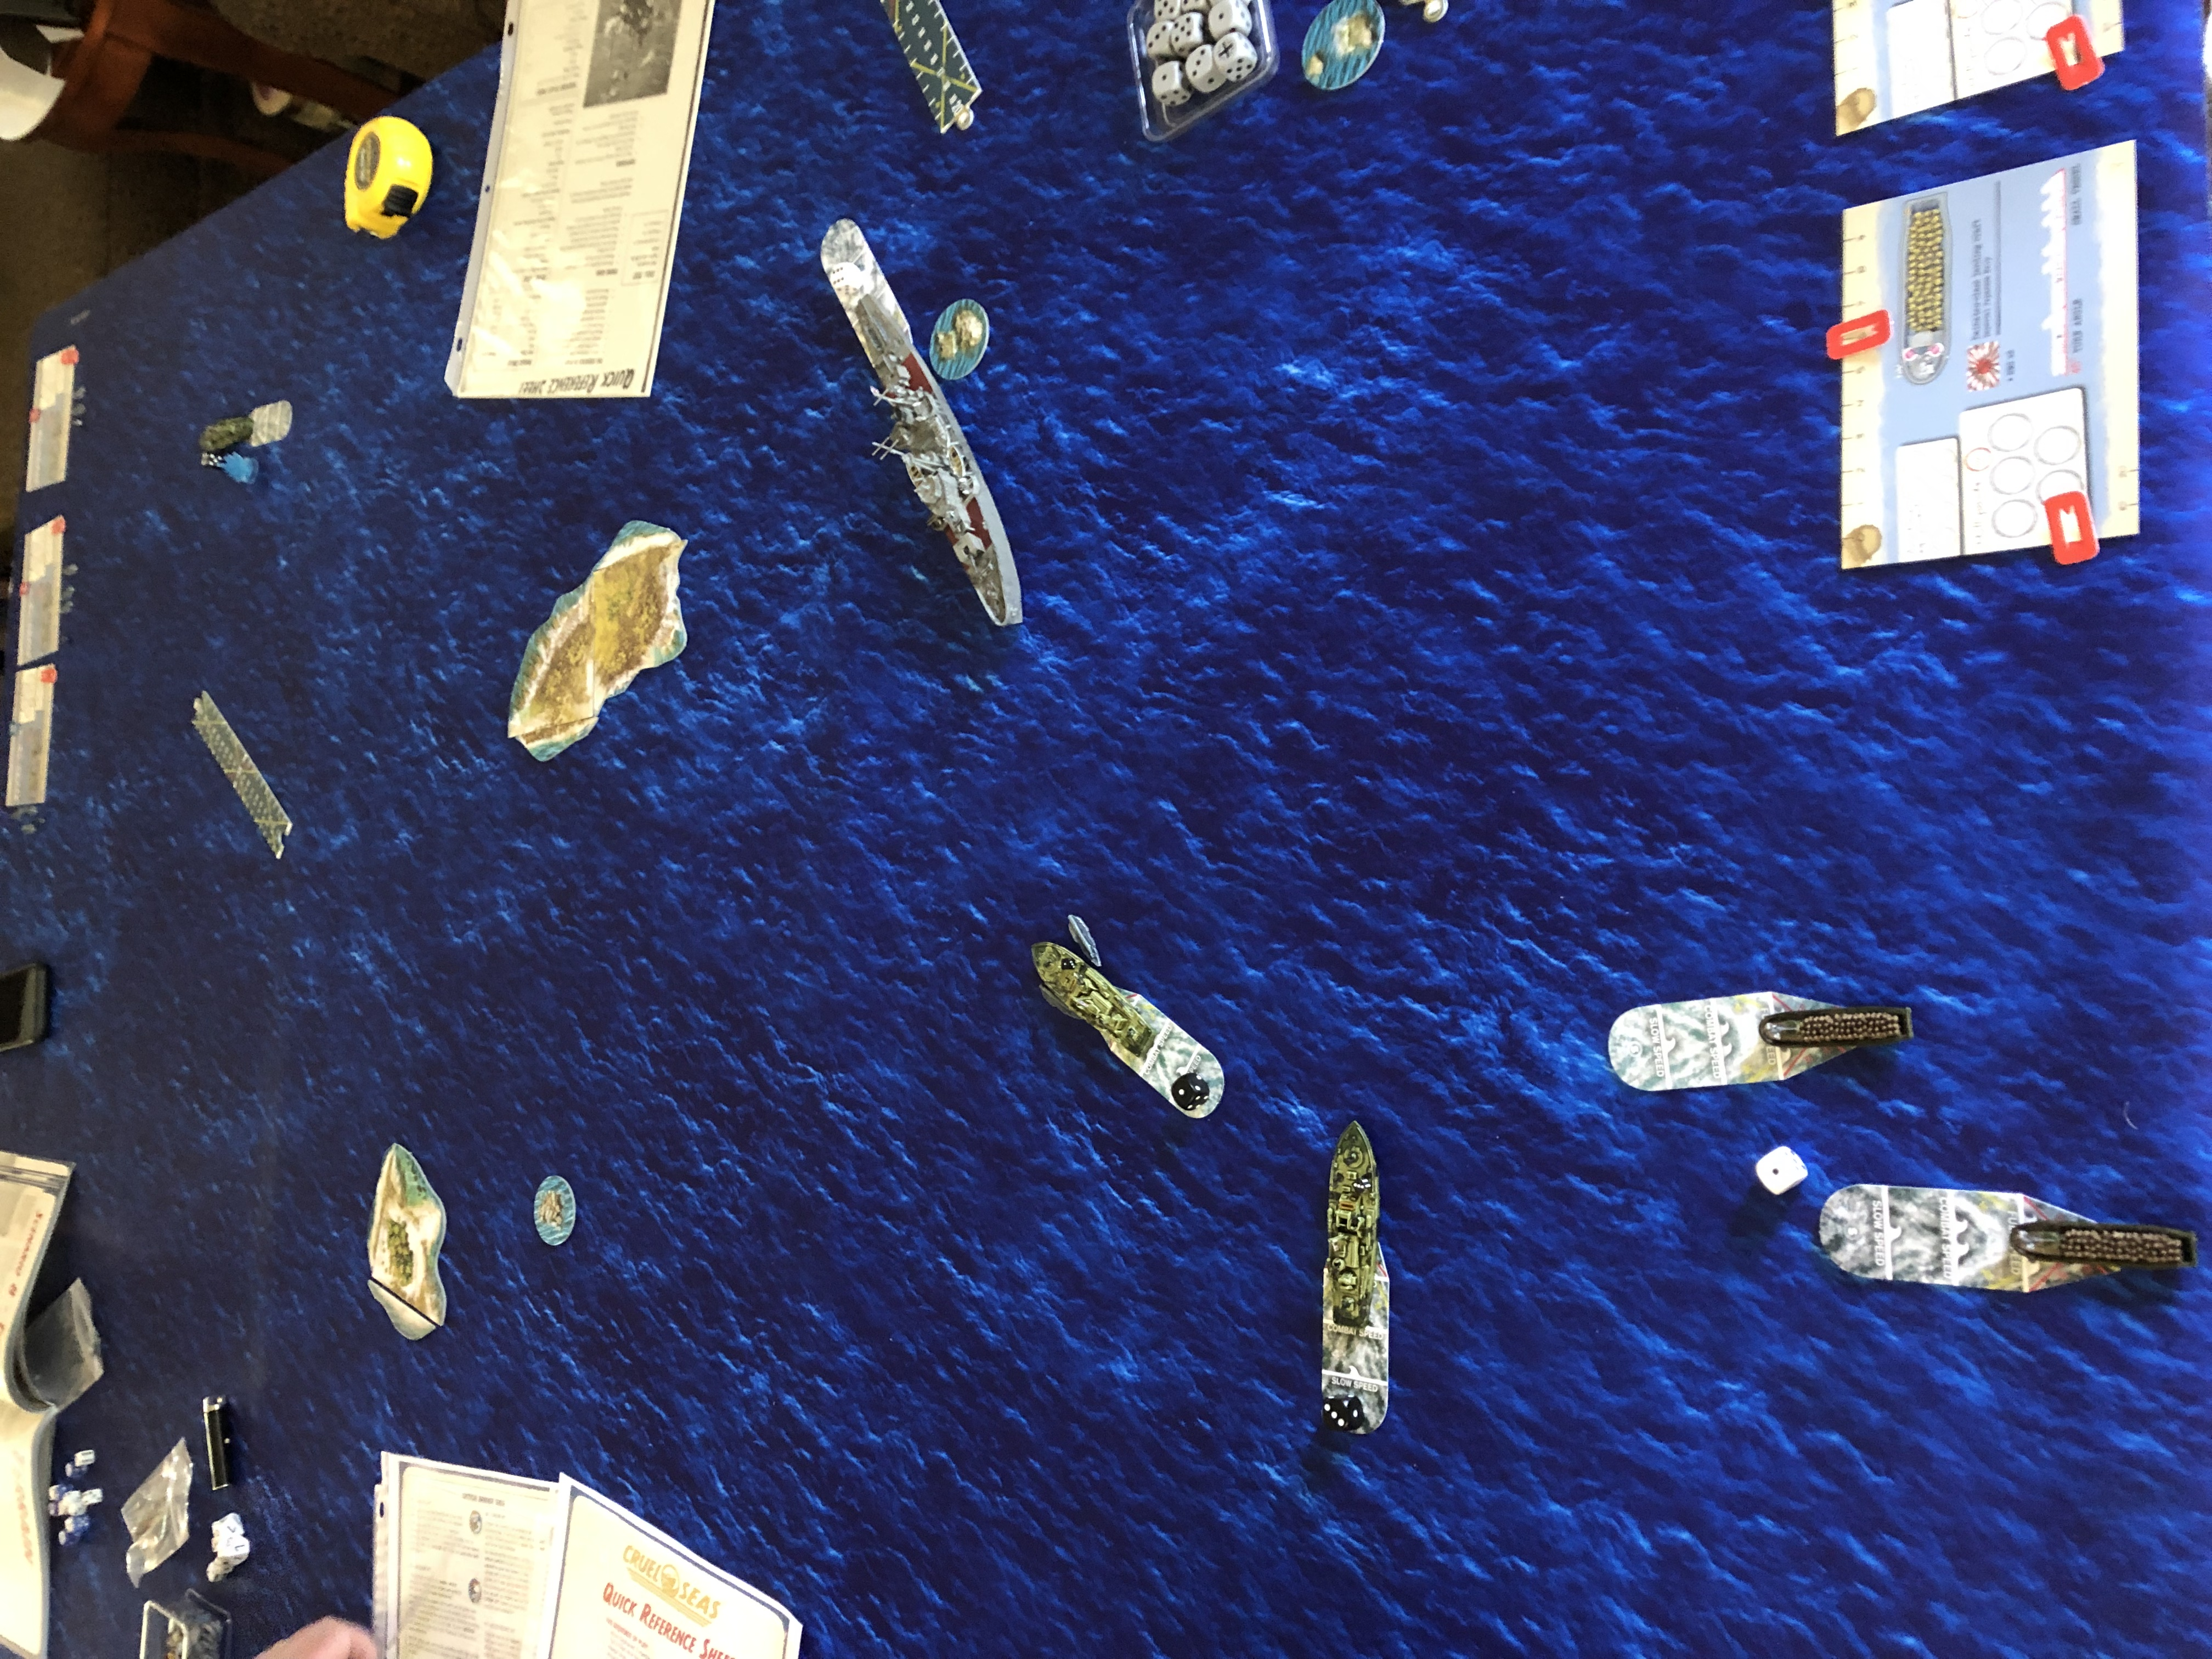 Skinner's Commandos versus The Wall in a coastal engagement